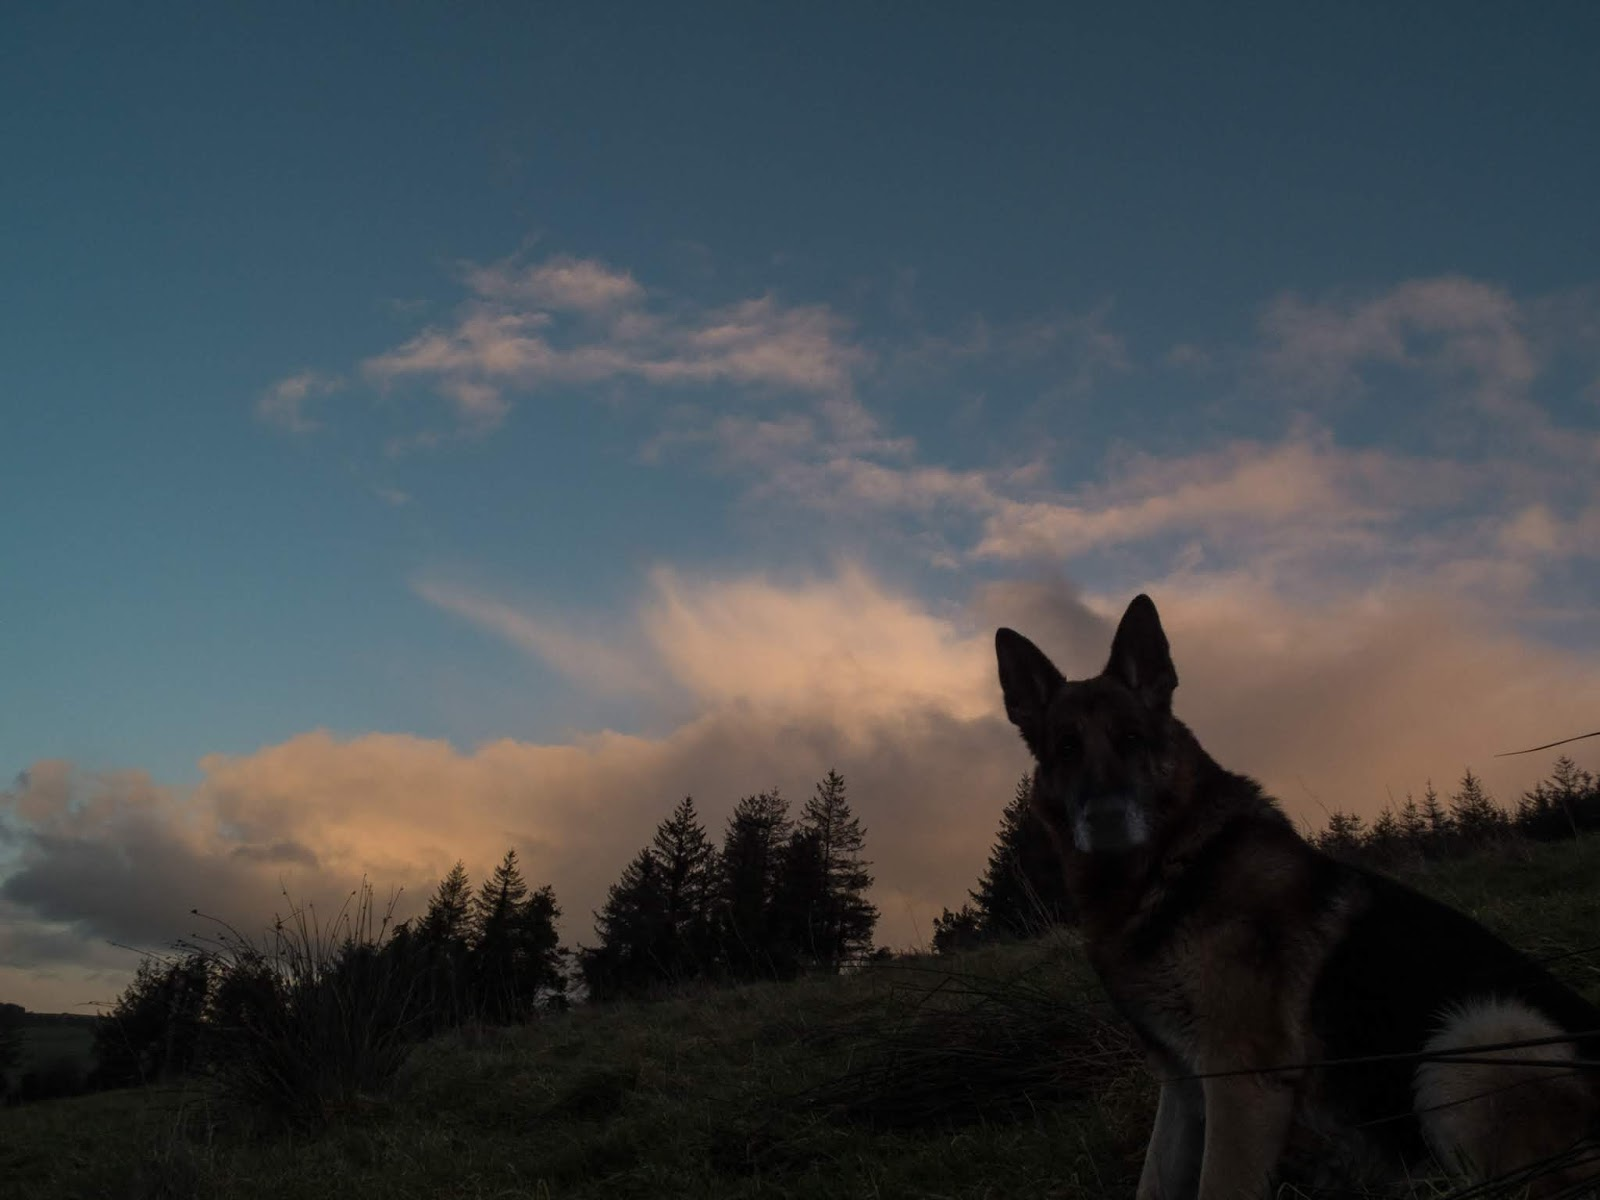 A German Shepherd sitting on a hillside at sunset.